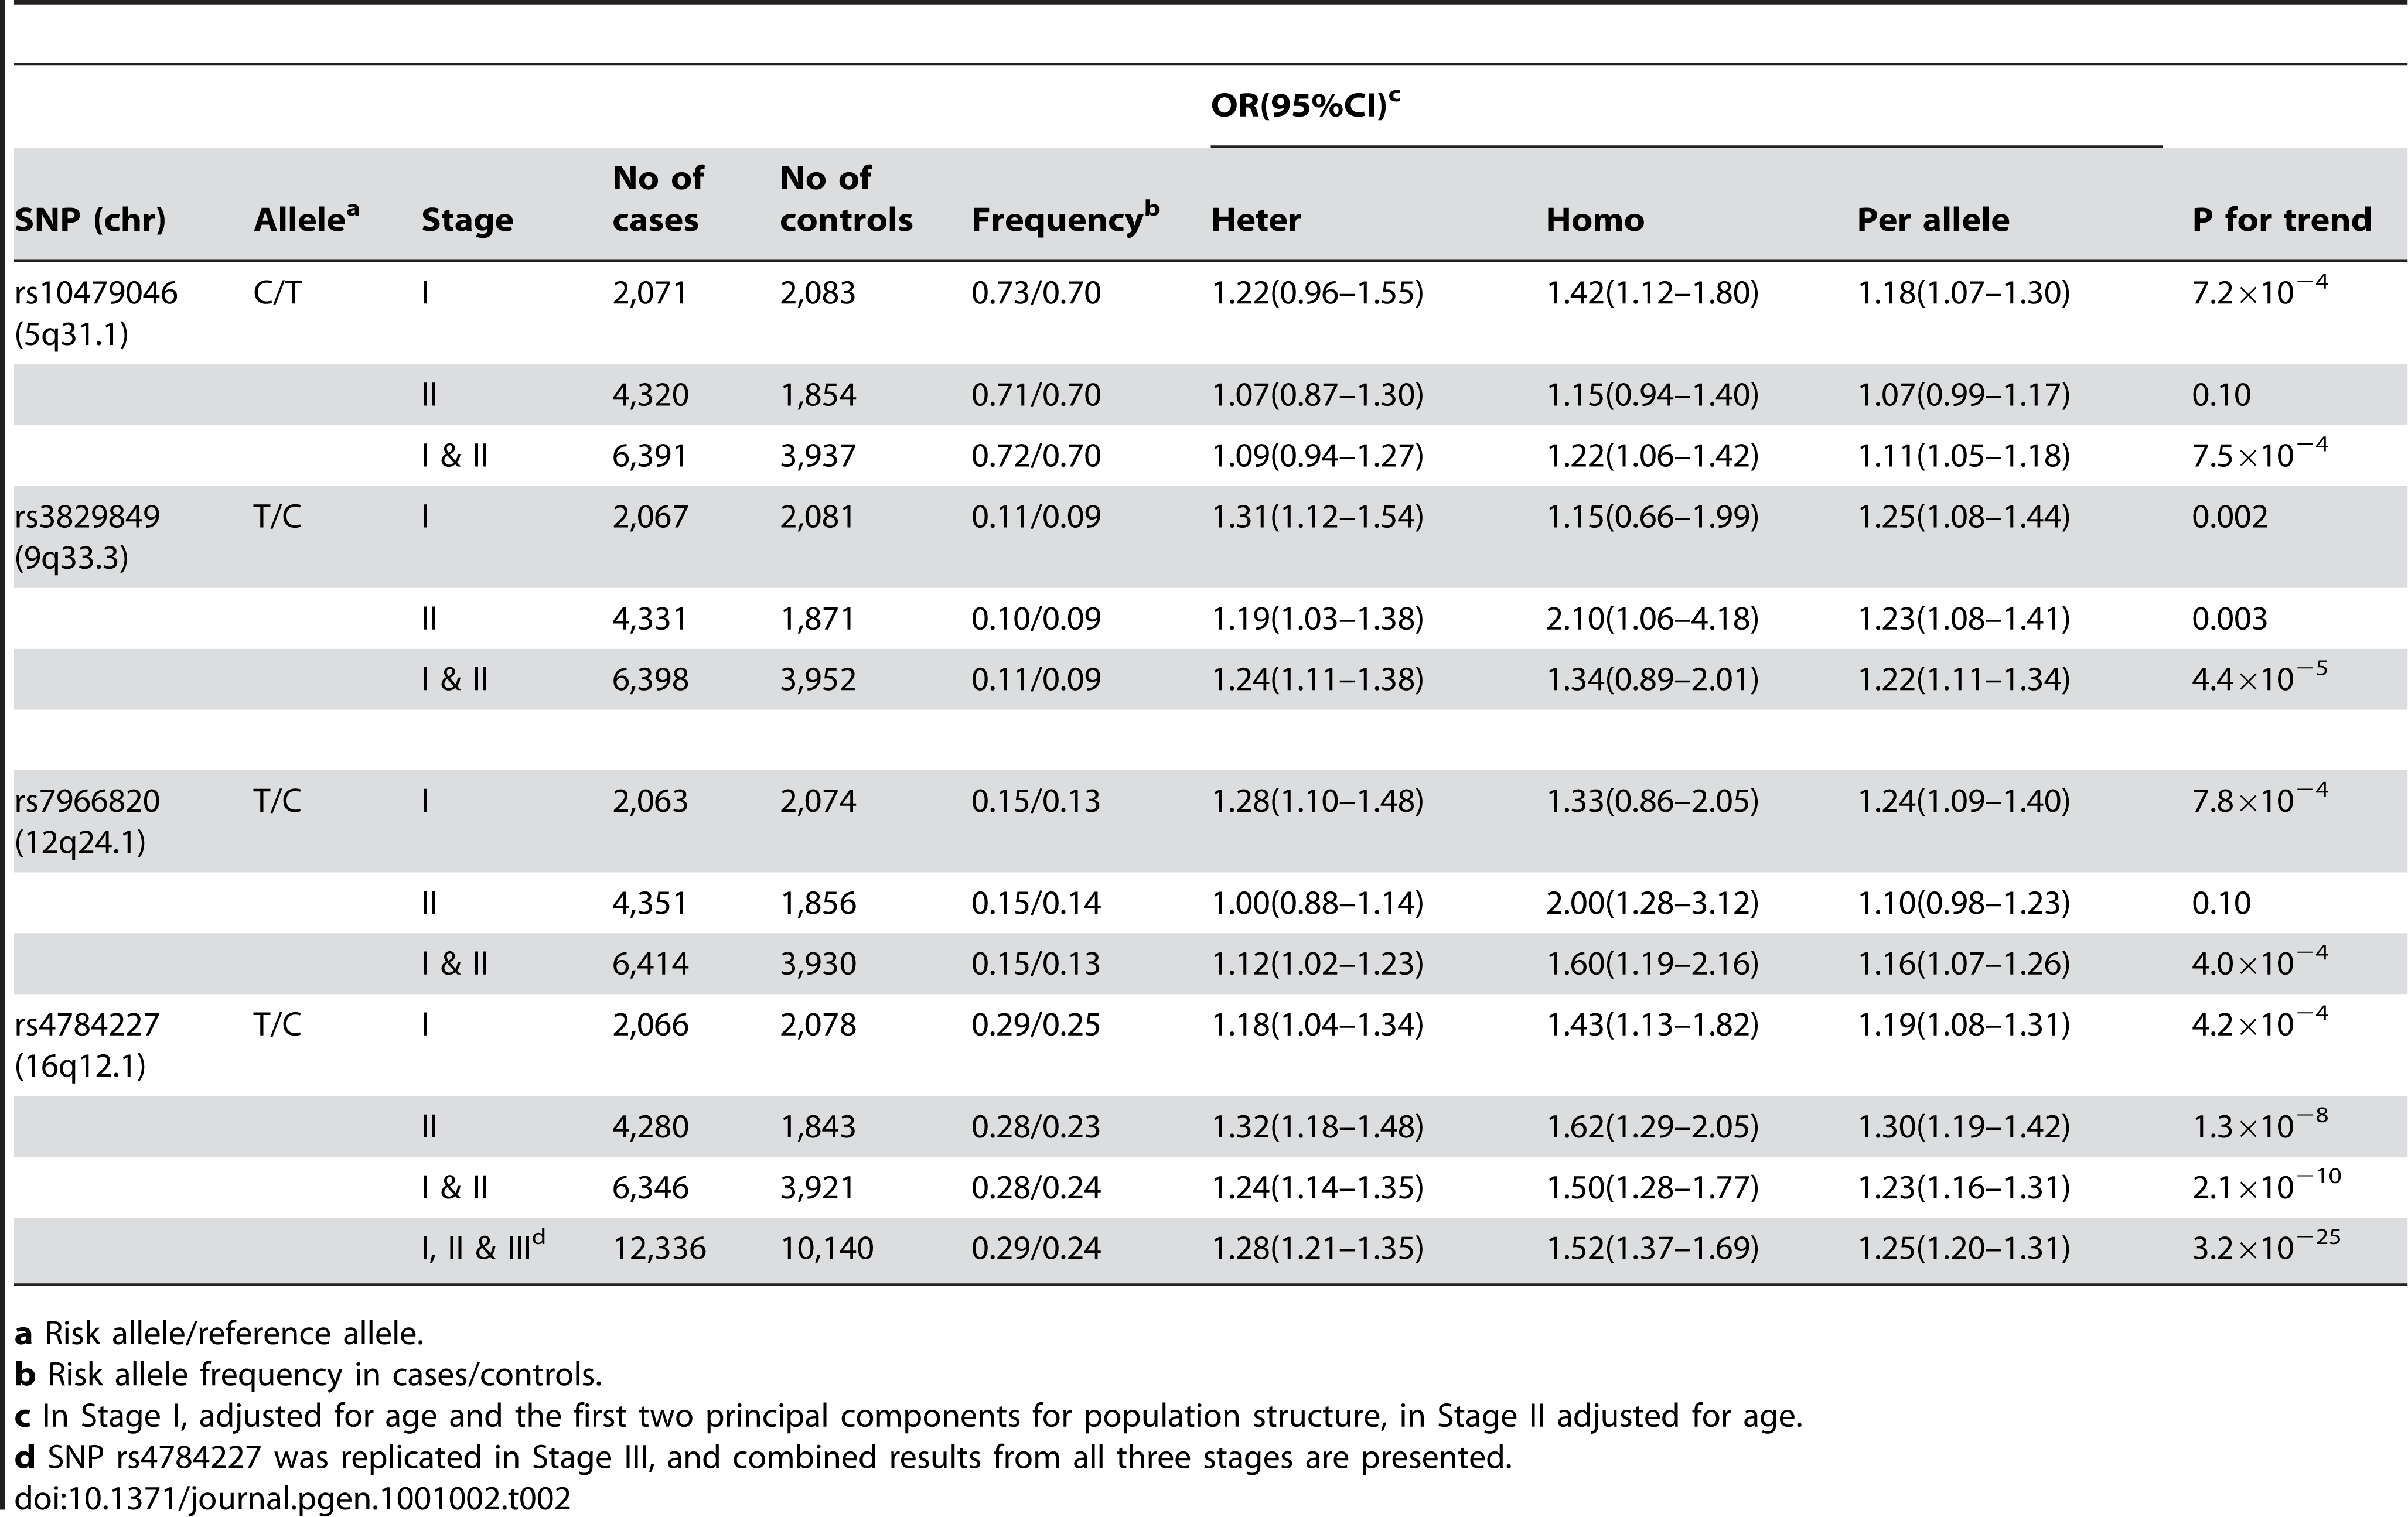 Results from Stages I to III for rs4784227 and Stages I and II for other three SNPs that showed promising associations with breast cancer risk in Stage II.